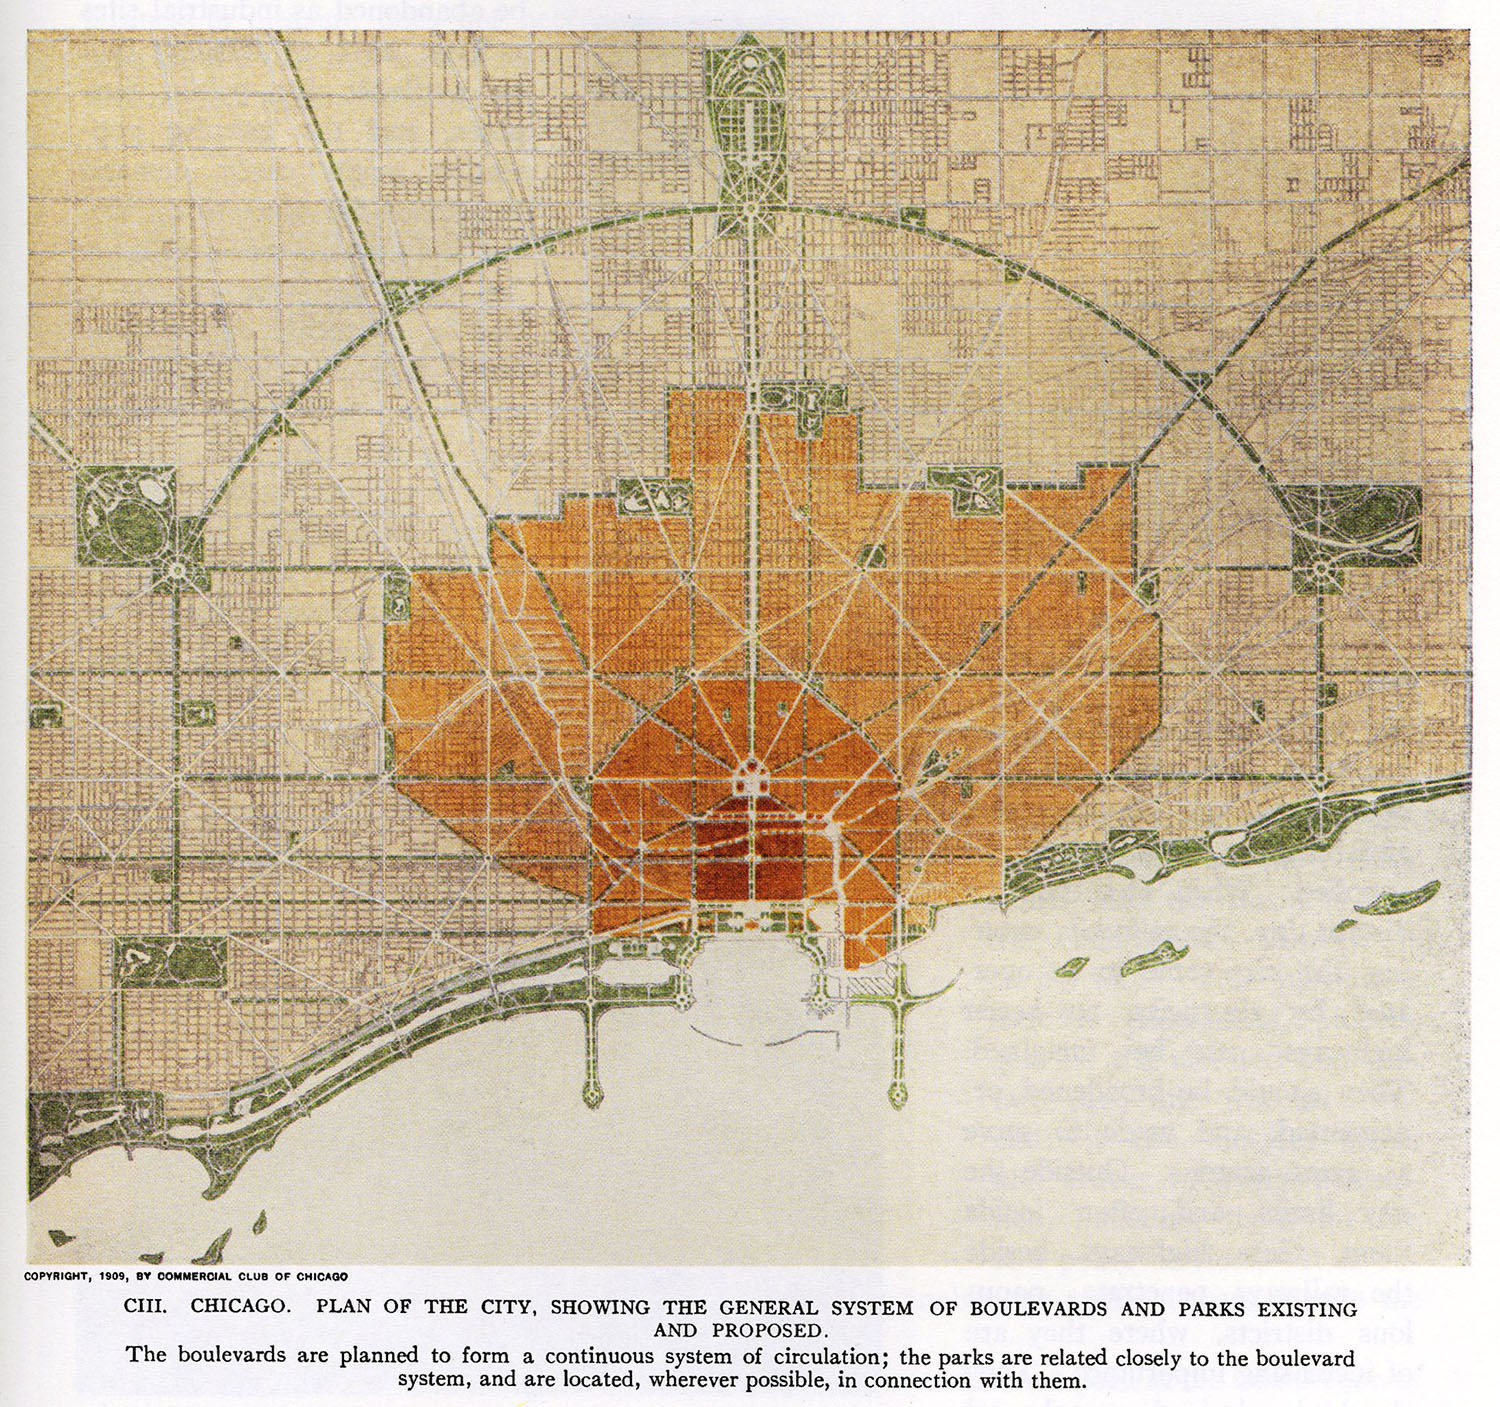 CIII: Existing and Proposed Parks and Boulevards